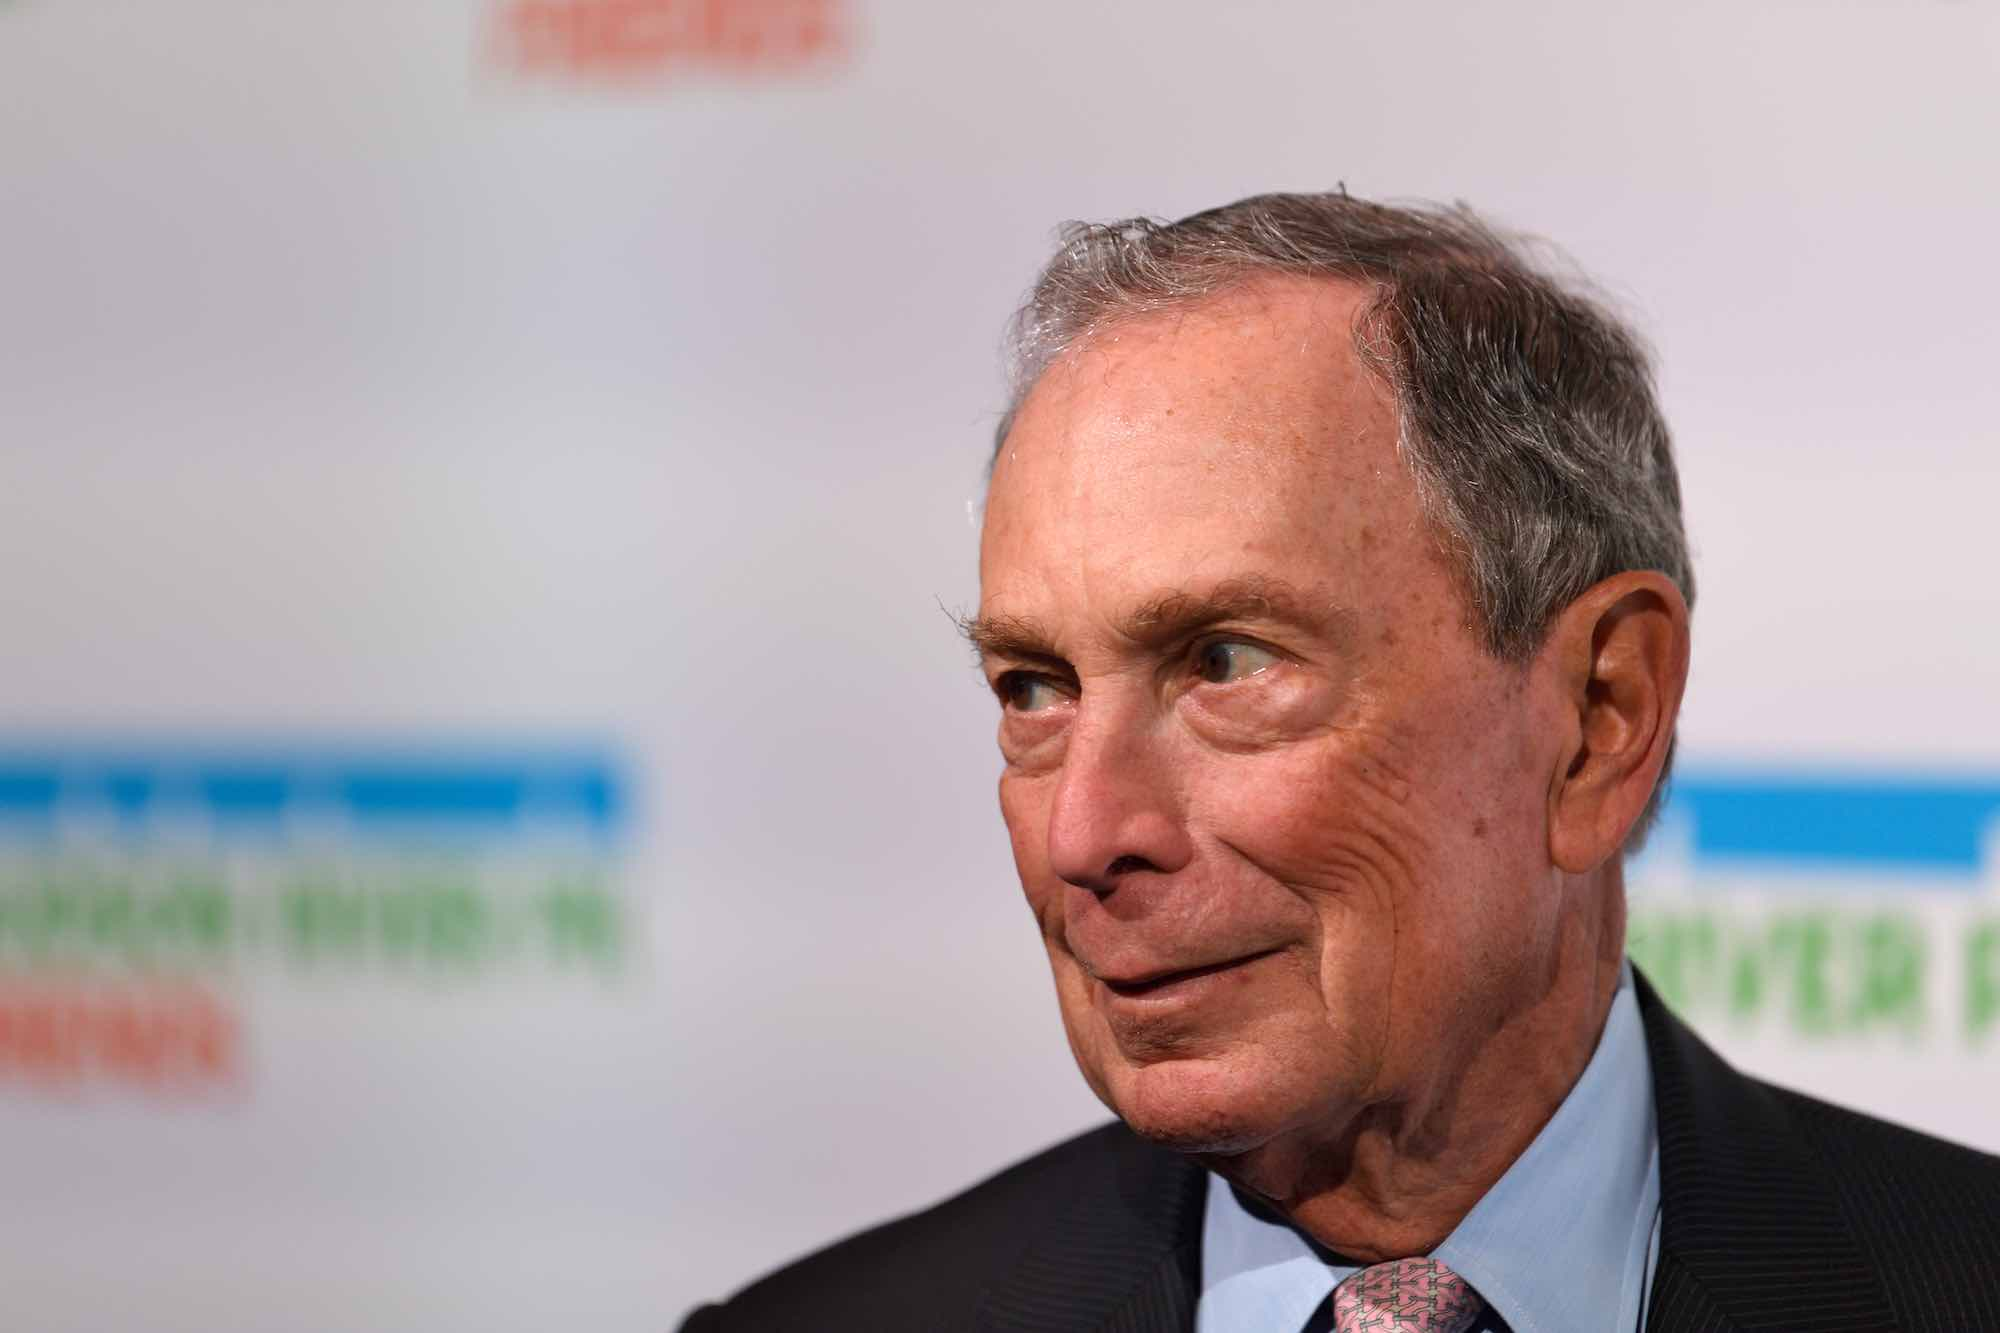 Michael Bloomberg at an event